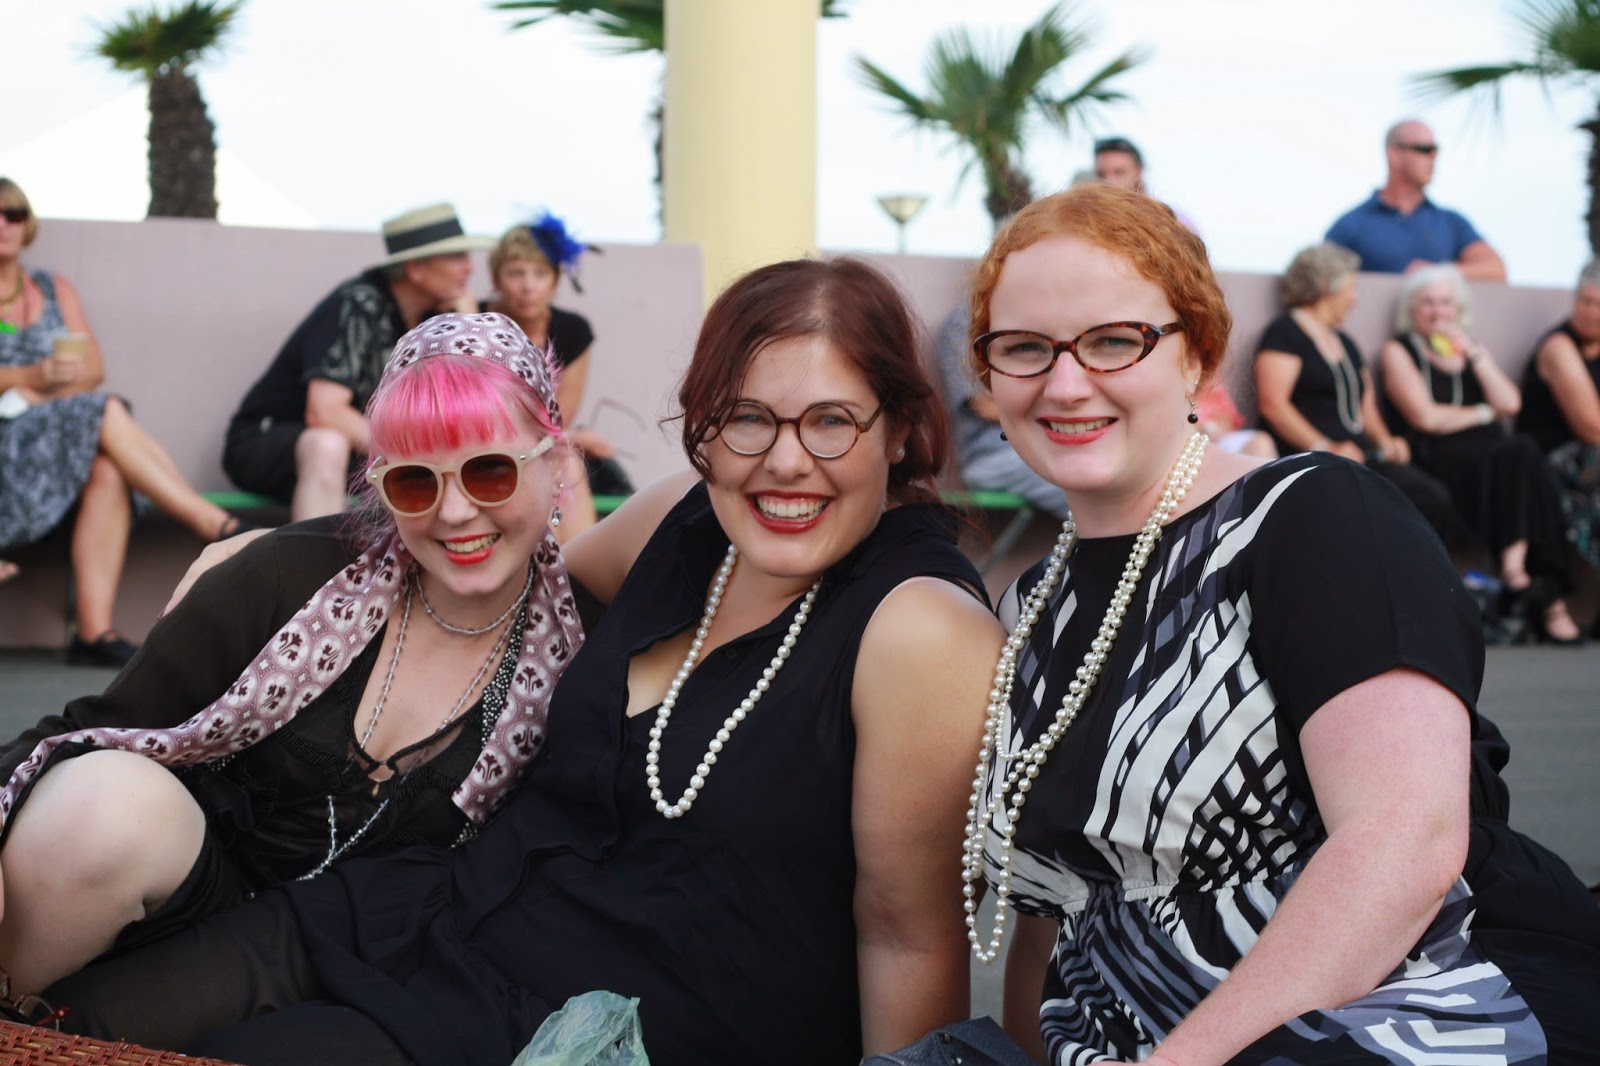 Three girls, in art deco costume and pearls, smiling.